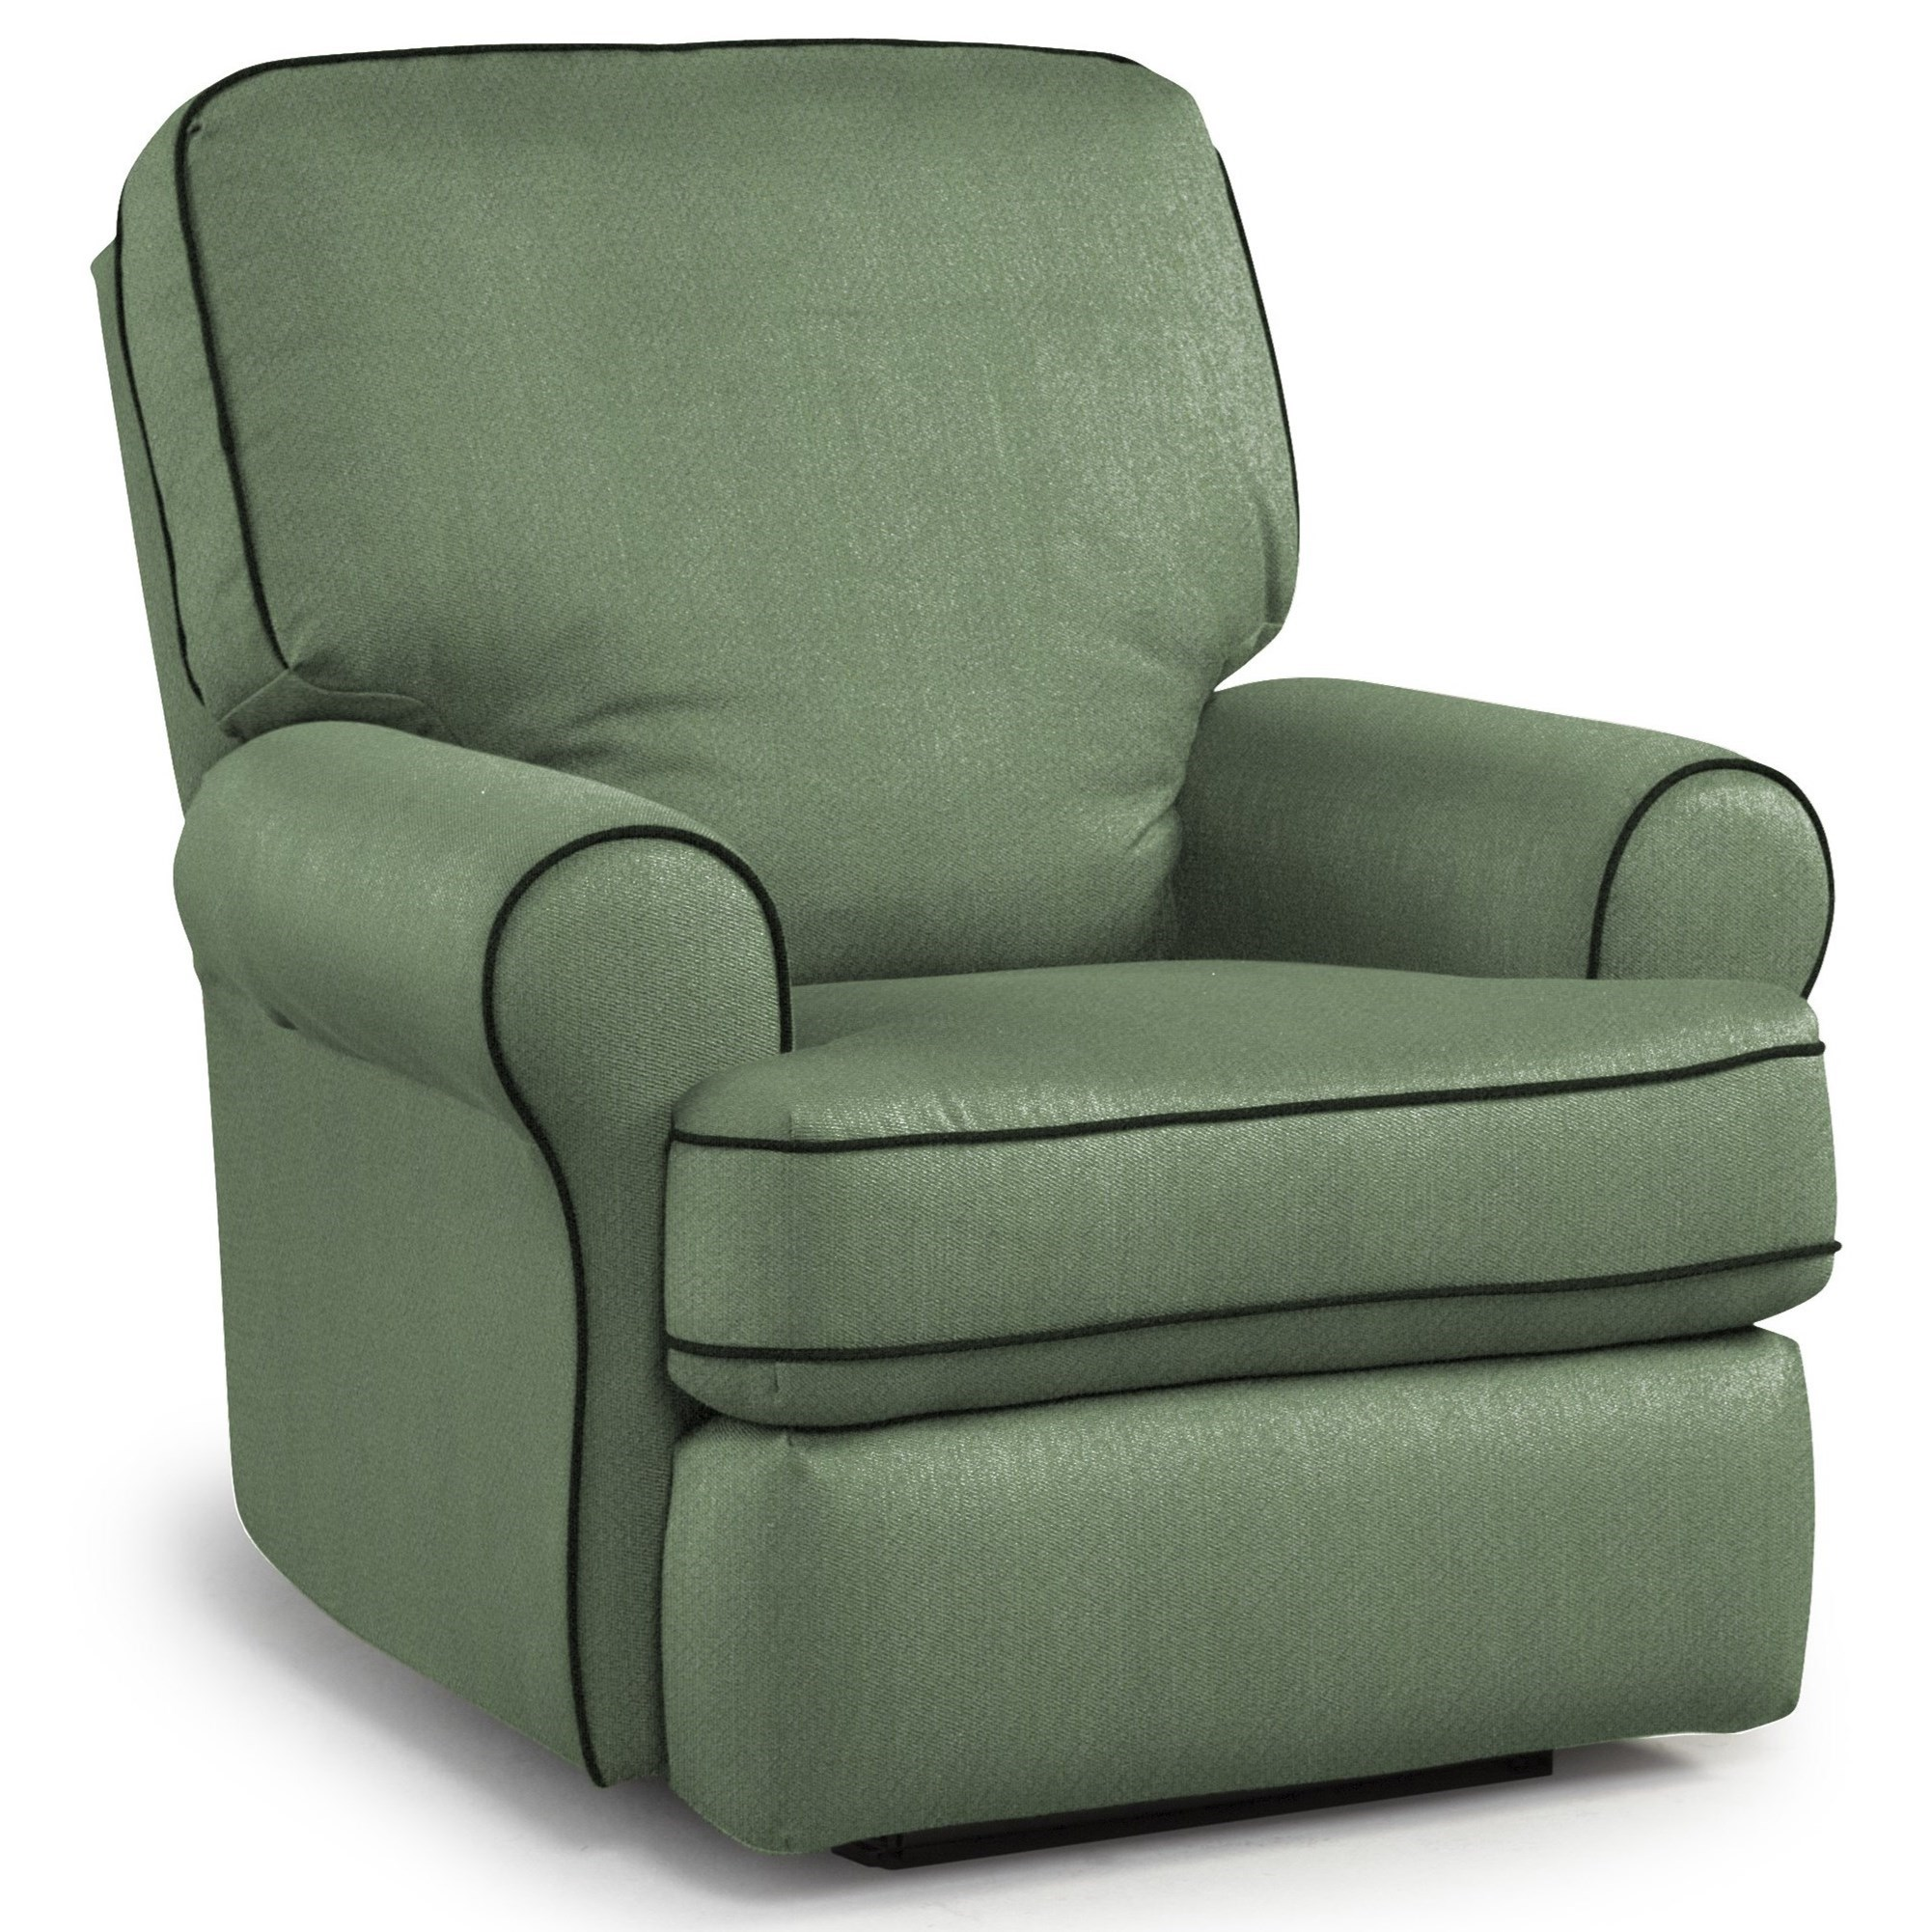 Tryp Swivel Glider Recliner by Best Home Furnishings at Fashion Furniture